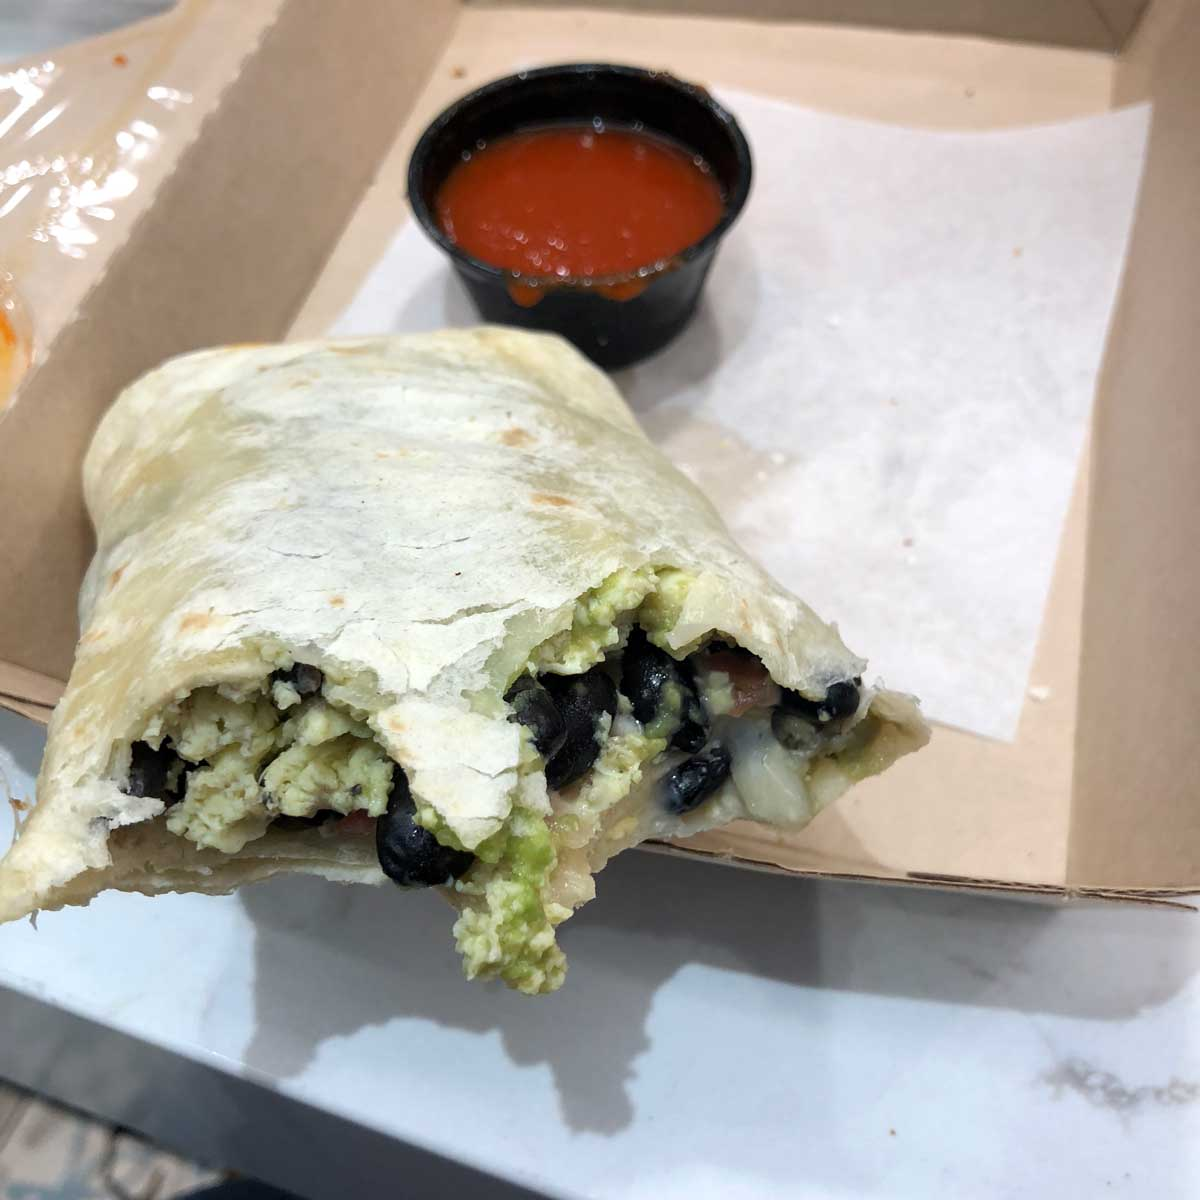 A partially eaten burrito in a to-go container